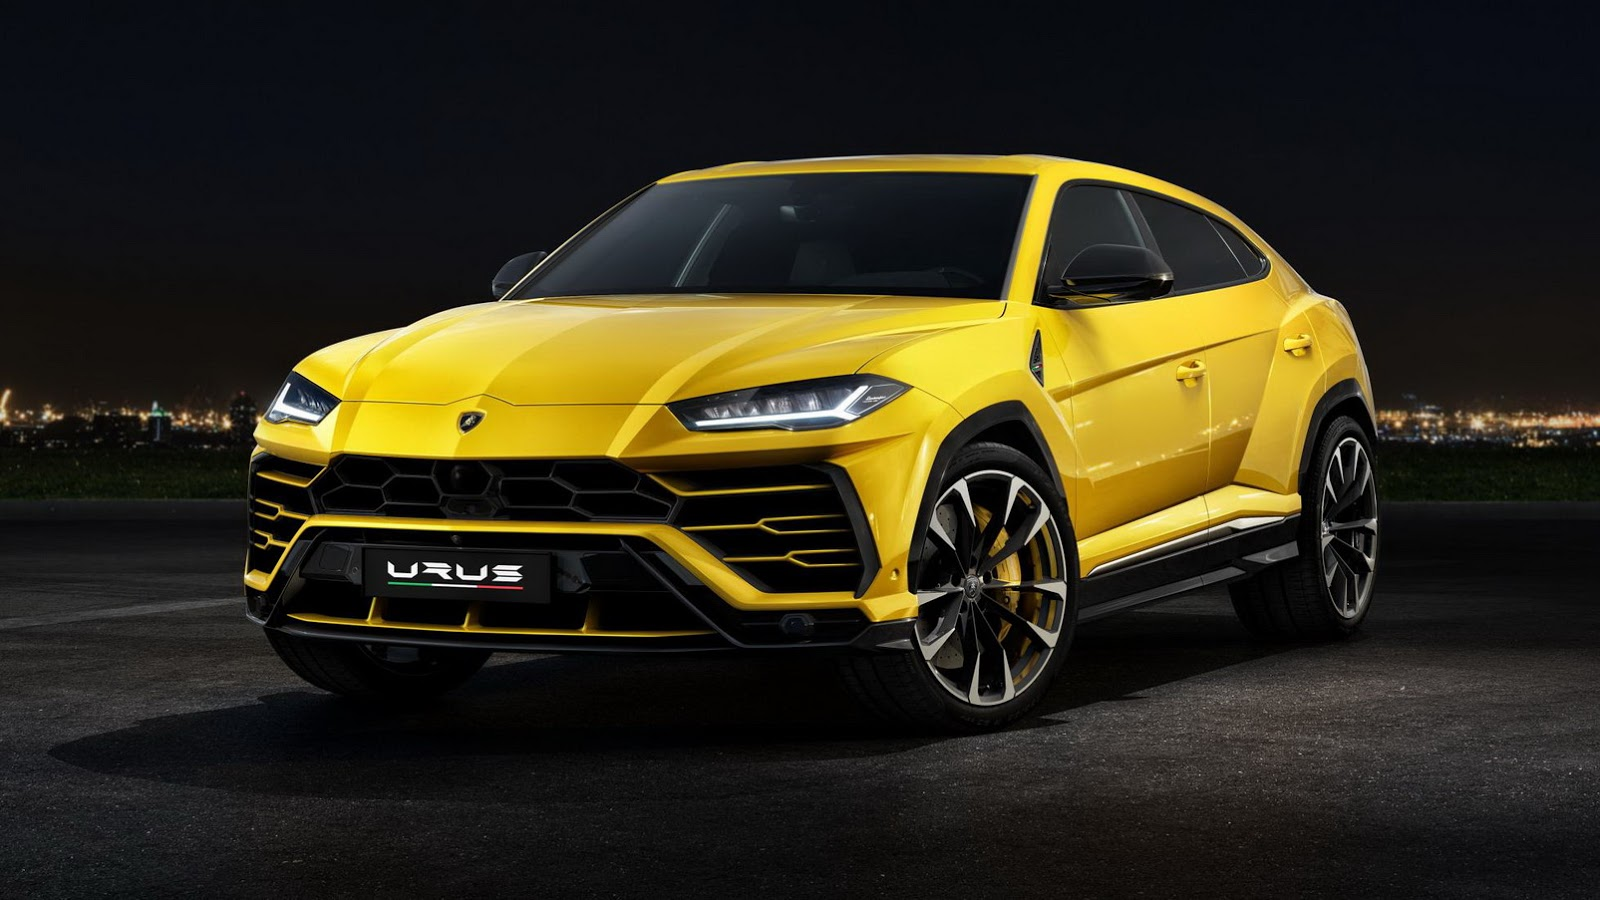 Thanks to Urus, Lamborghini Now Valued at $11 Billion